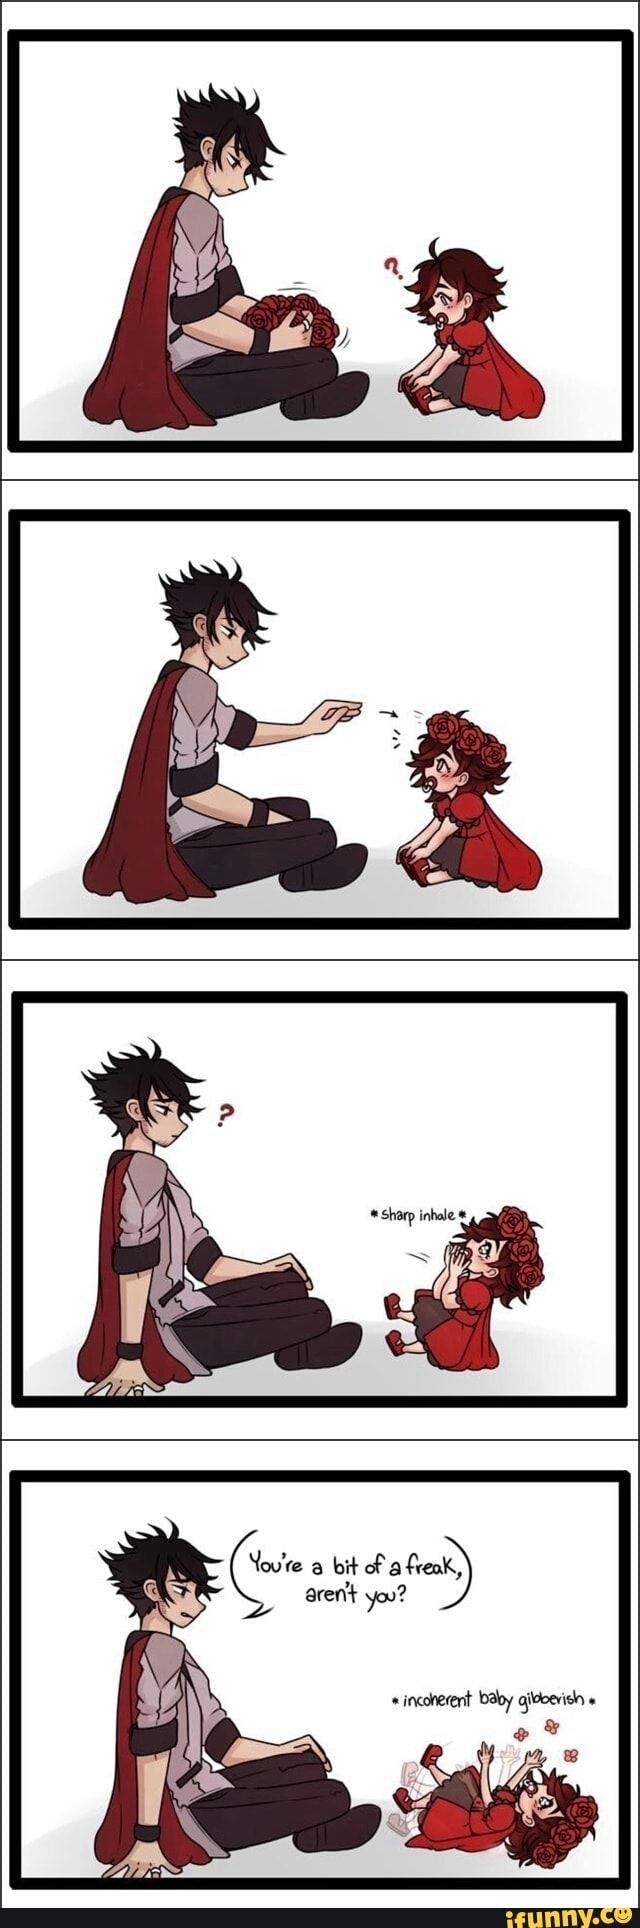 """You can't tell me Qrow didn't win Baby Ruby over by making her a rose flower crown, and sequentially turning her into his biggest adoring fan, you just can't ok!"" by evebun - Ruby & Qrow - http://evebun.tumblr.com/post/160820294231/you-cant-tell-me-qrow-didnt-win-baby-ruby-over"